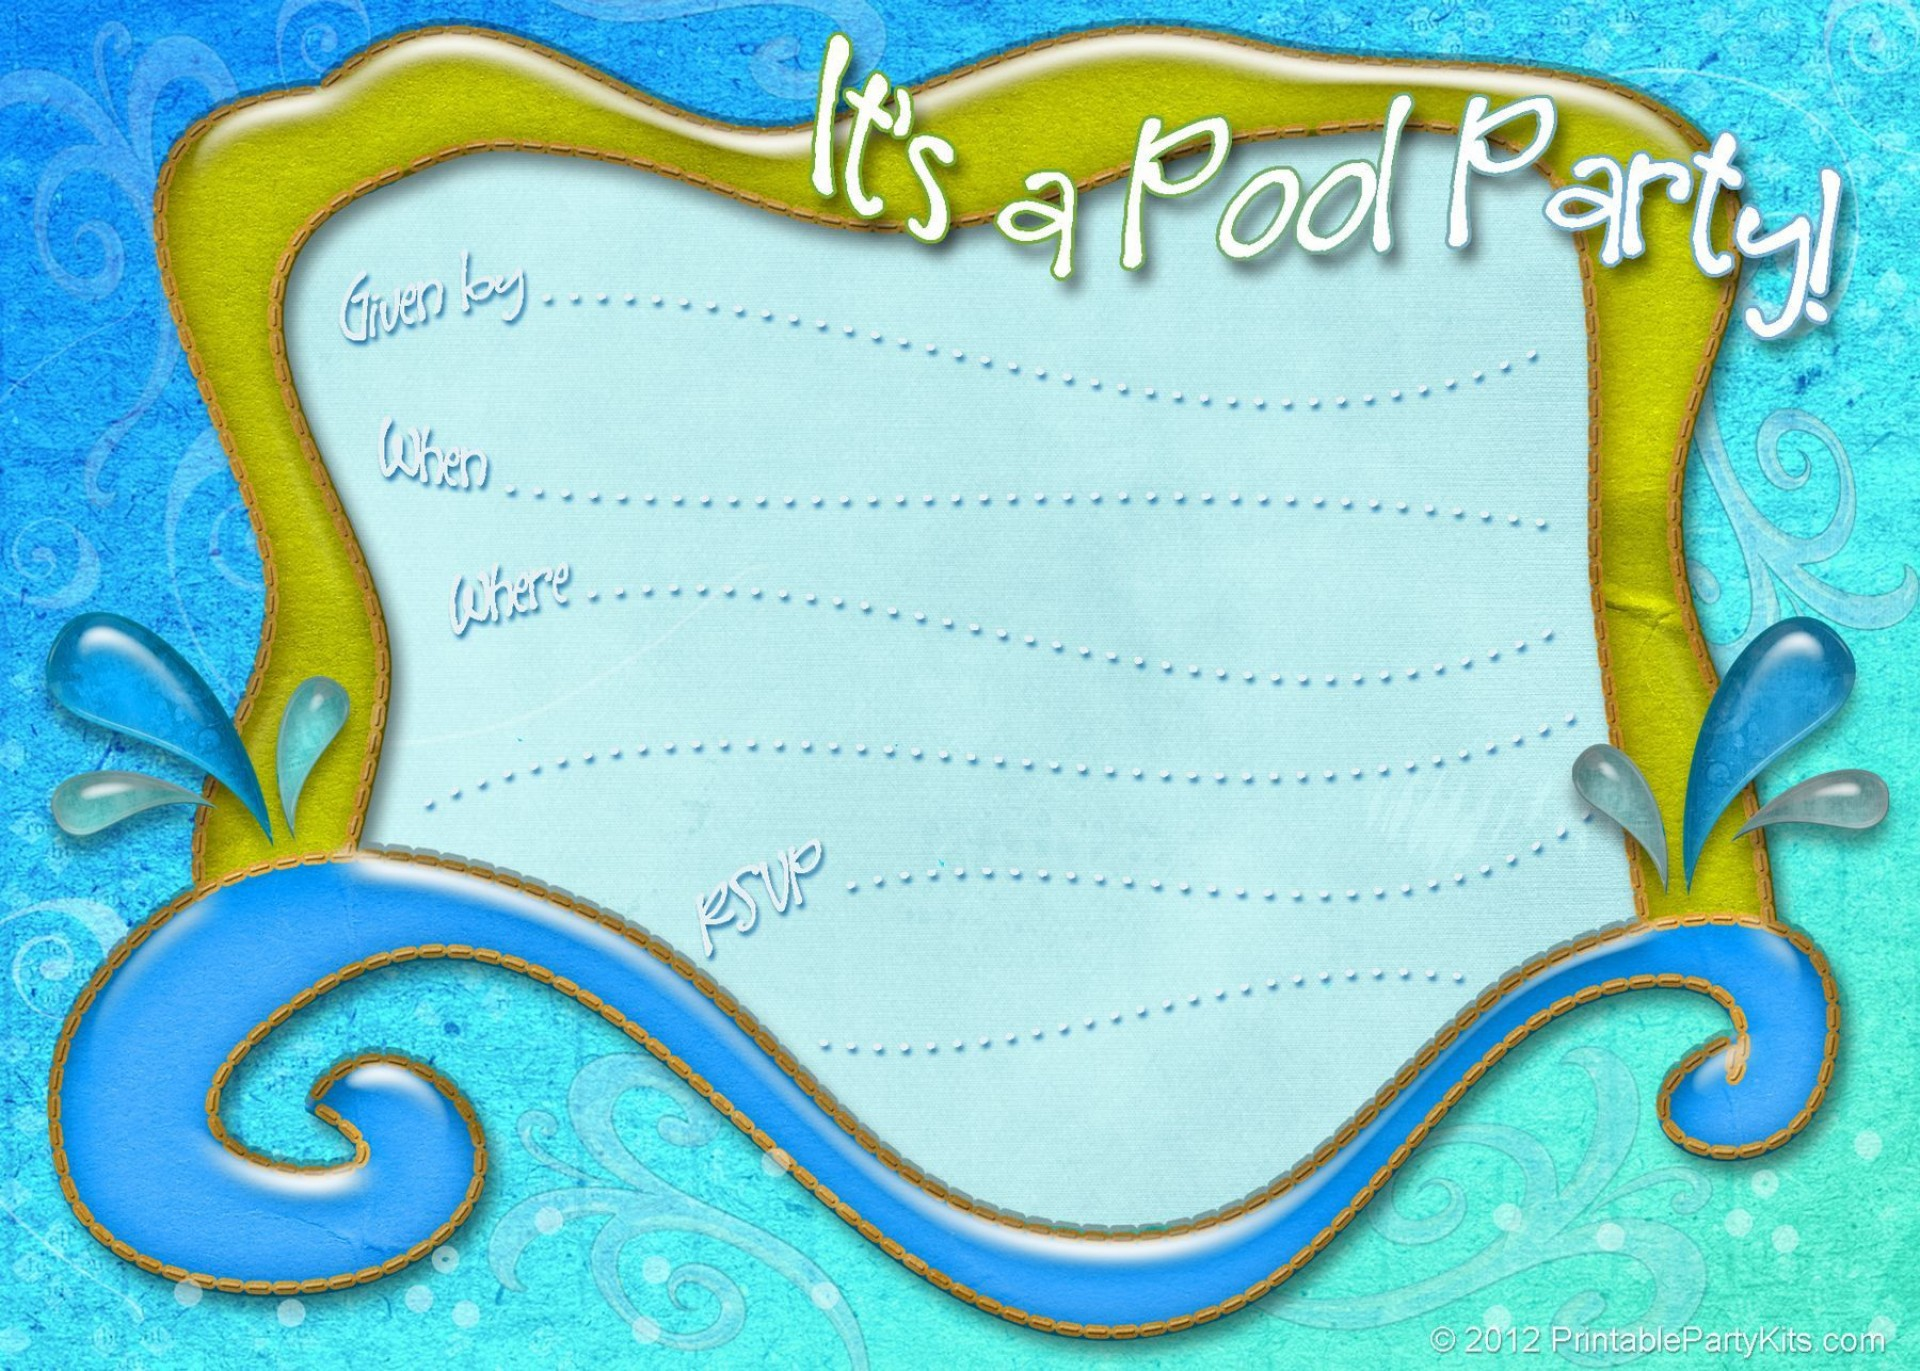 002 Unique Pool Party Invitation Template Free Sample  Downloadable Printable Swimming1920